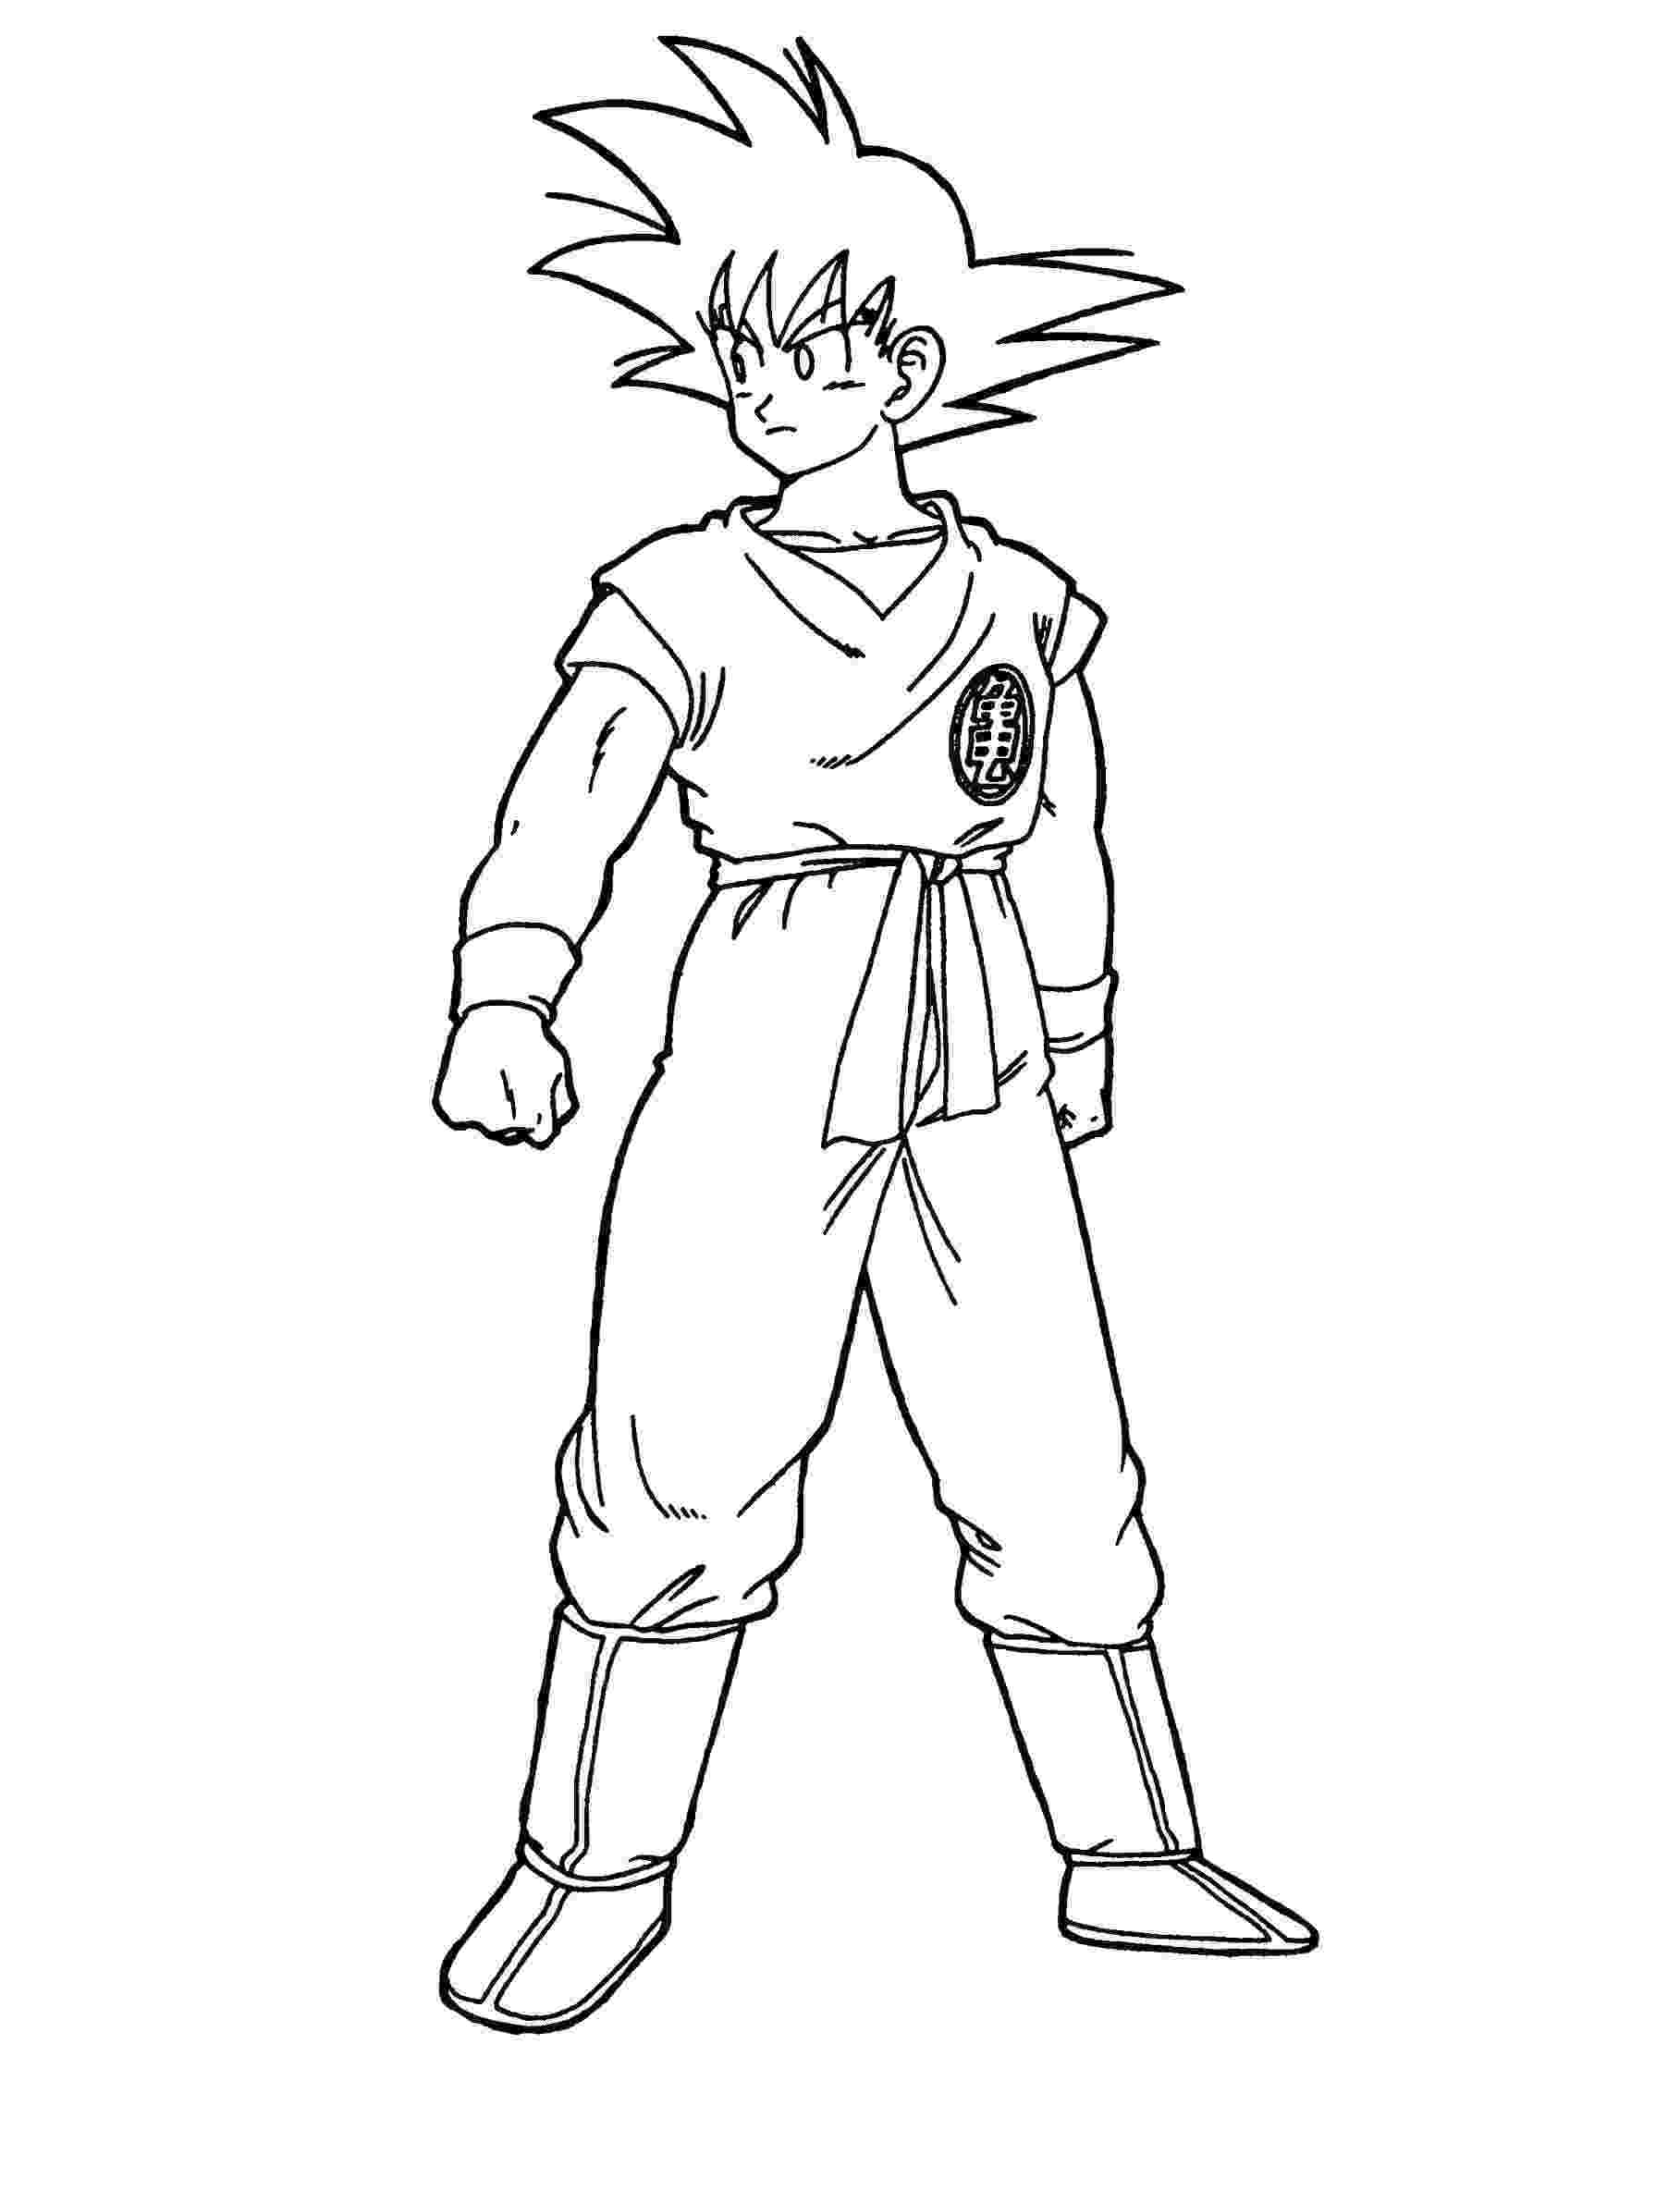 goku super saiyan coloring pages goku super saiyan coloring pages at getcoloringscom coloring saiyan goku super pages